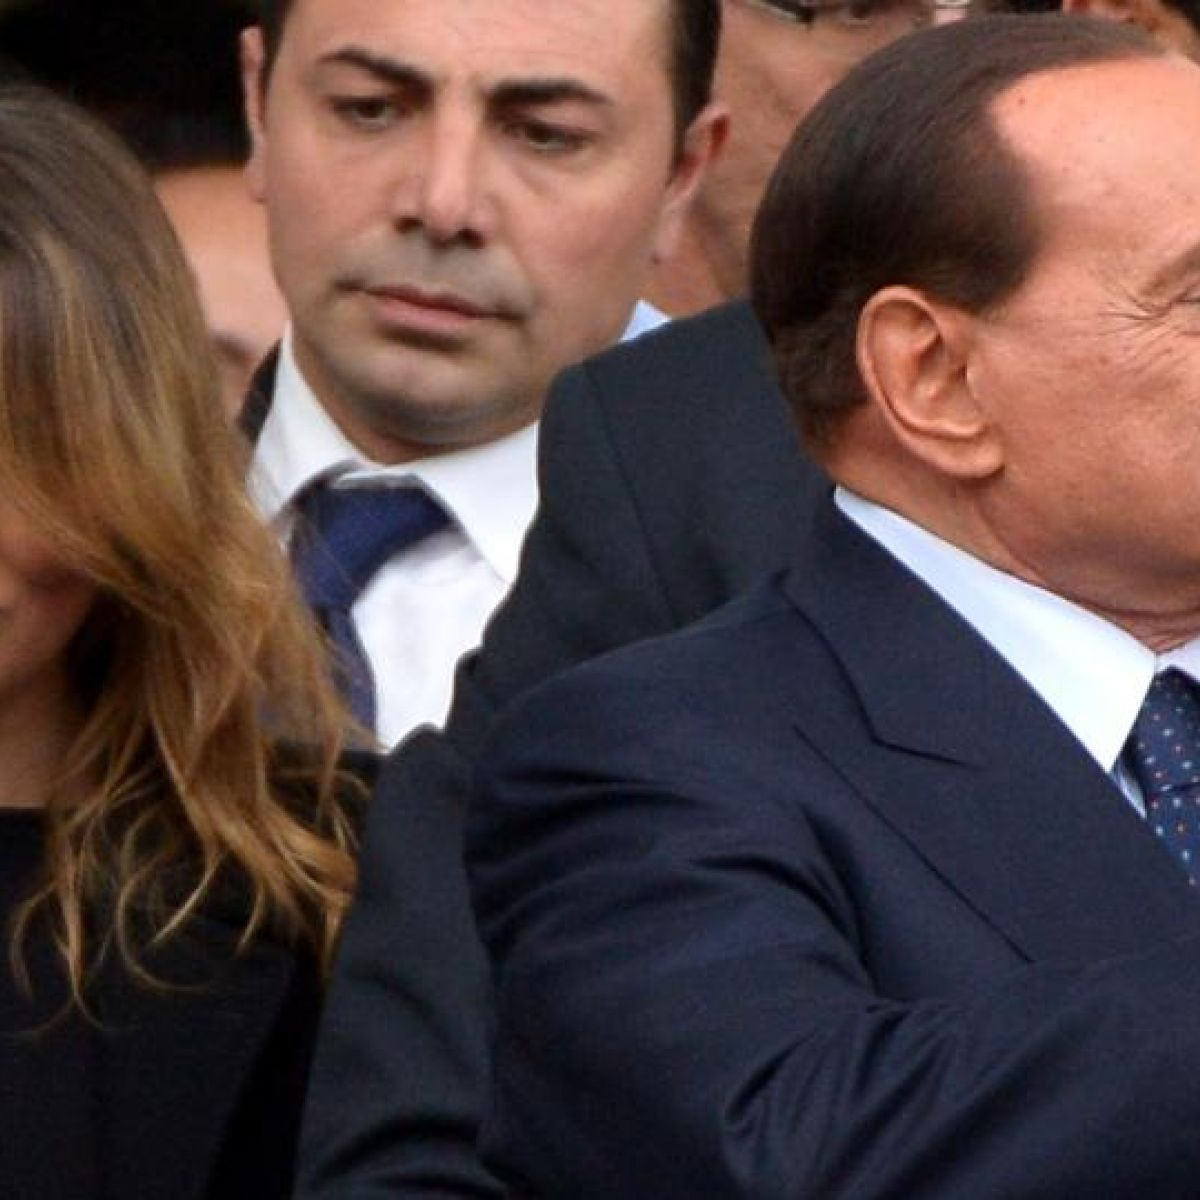 Silvio Berlusconi wants to marry a girl who is almost 50 years younger than him 25.09.2013 30